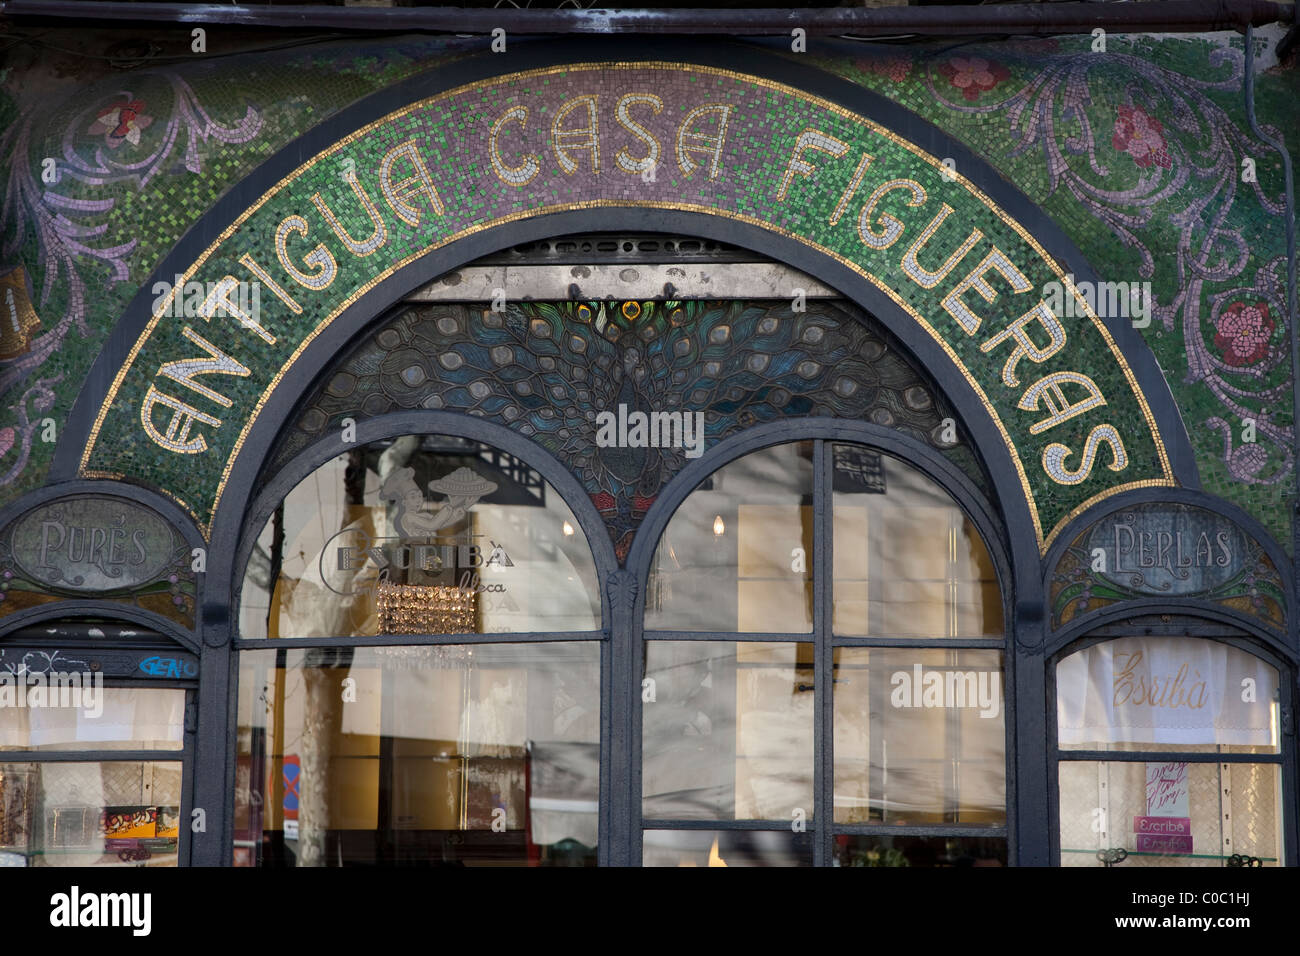 Facade of Escriba Bakery and Cafe on La Rambla Street in Barcelona, Catalonia, Spain - Stock Image